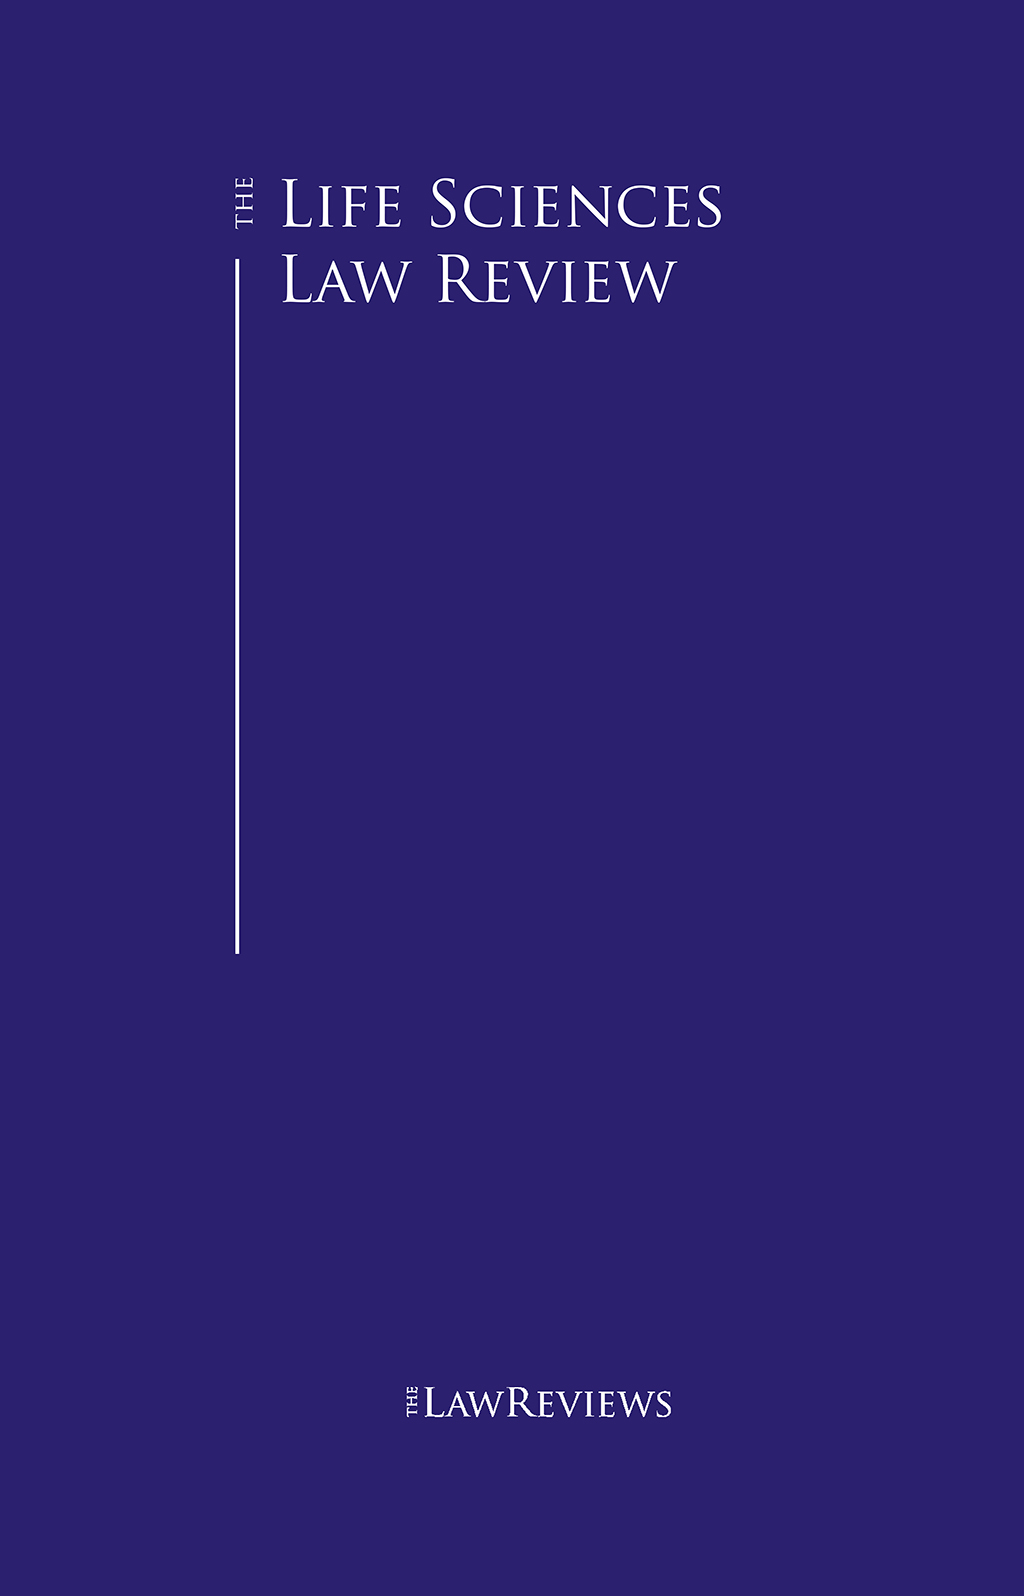 The Life Sciences Law Review